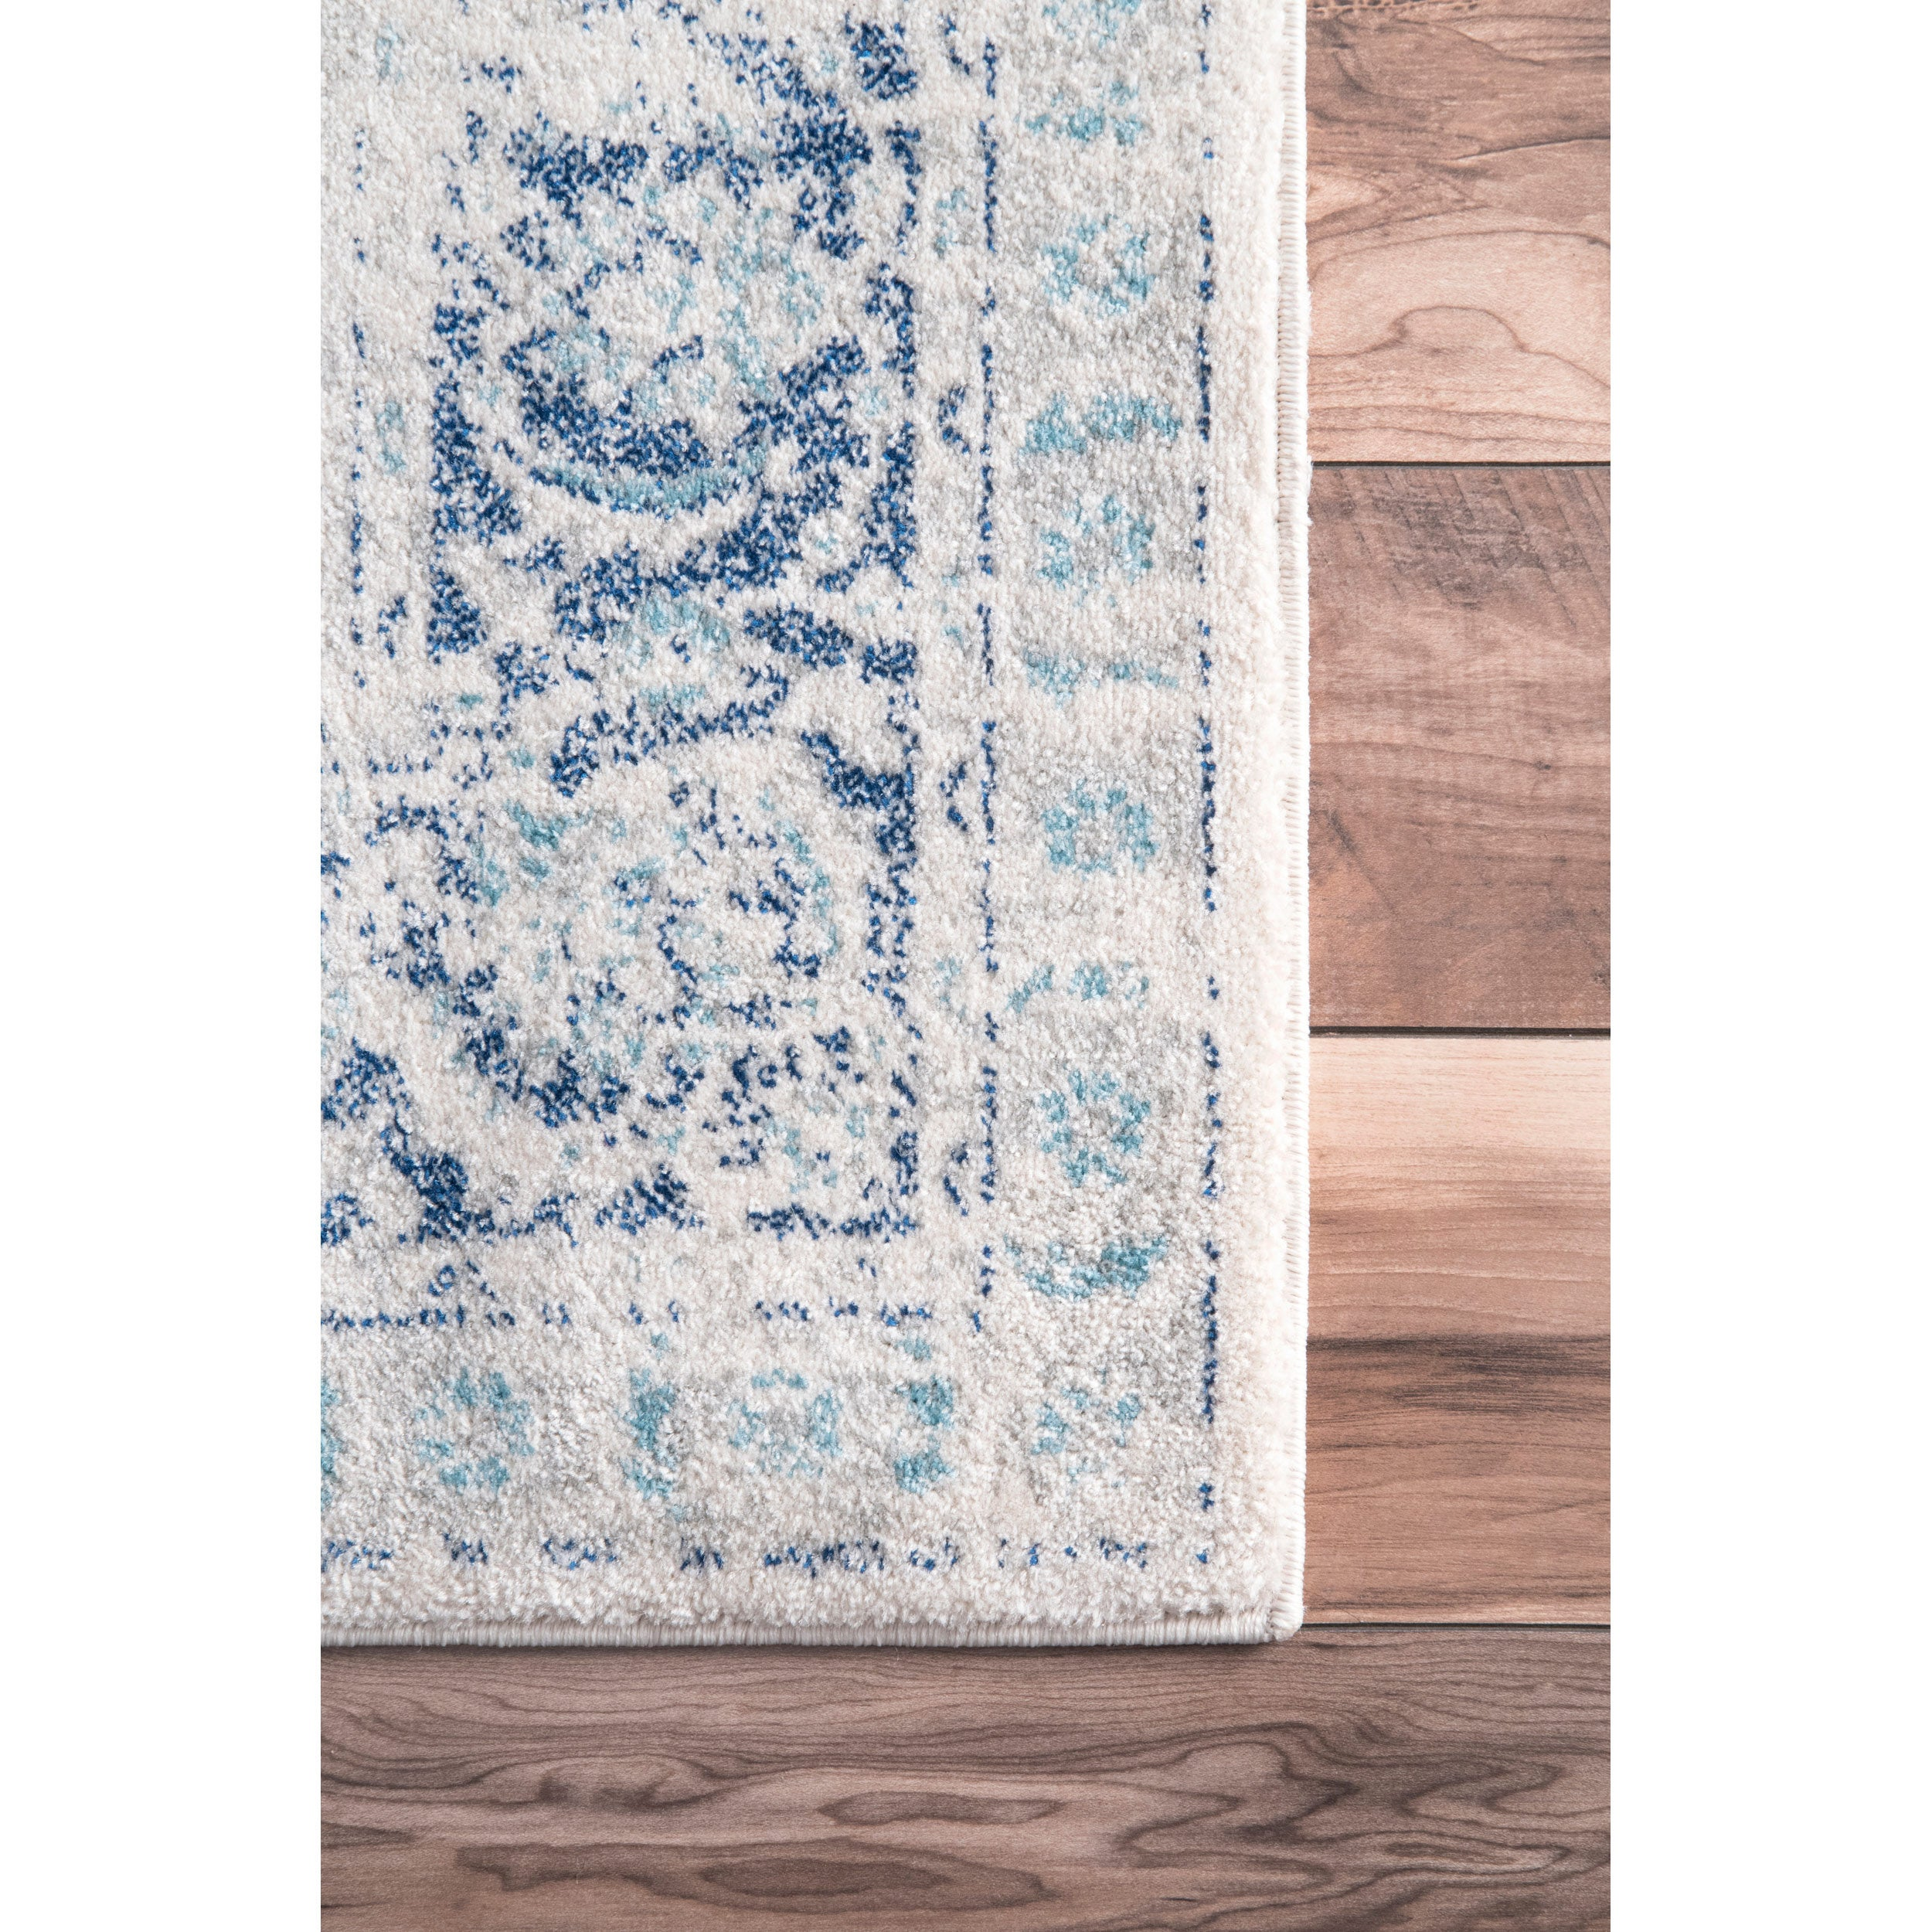 room hayley rugs cream fabulous and designs manor canada black grey area blue geometric light white living soft dining gray rug amazing lark colored beige carpet ivory